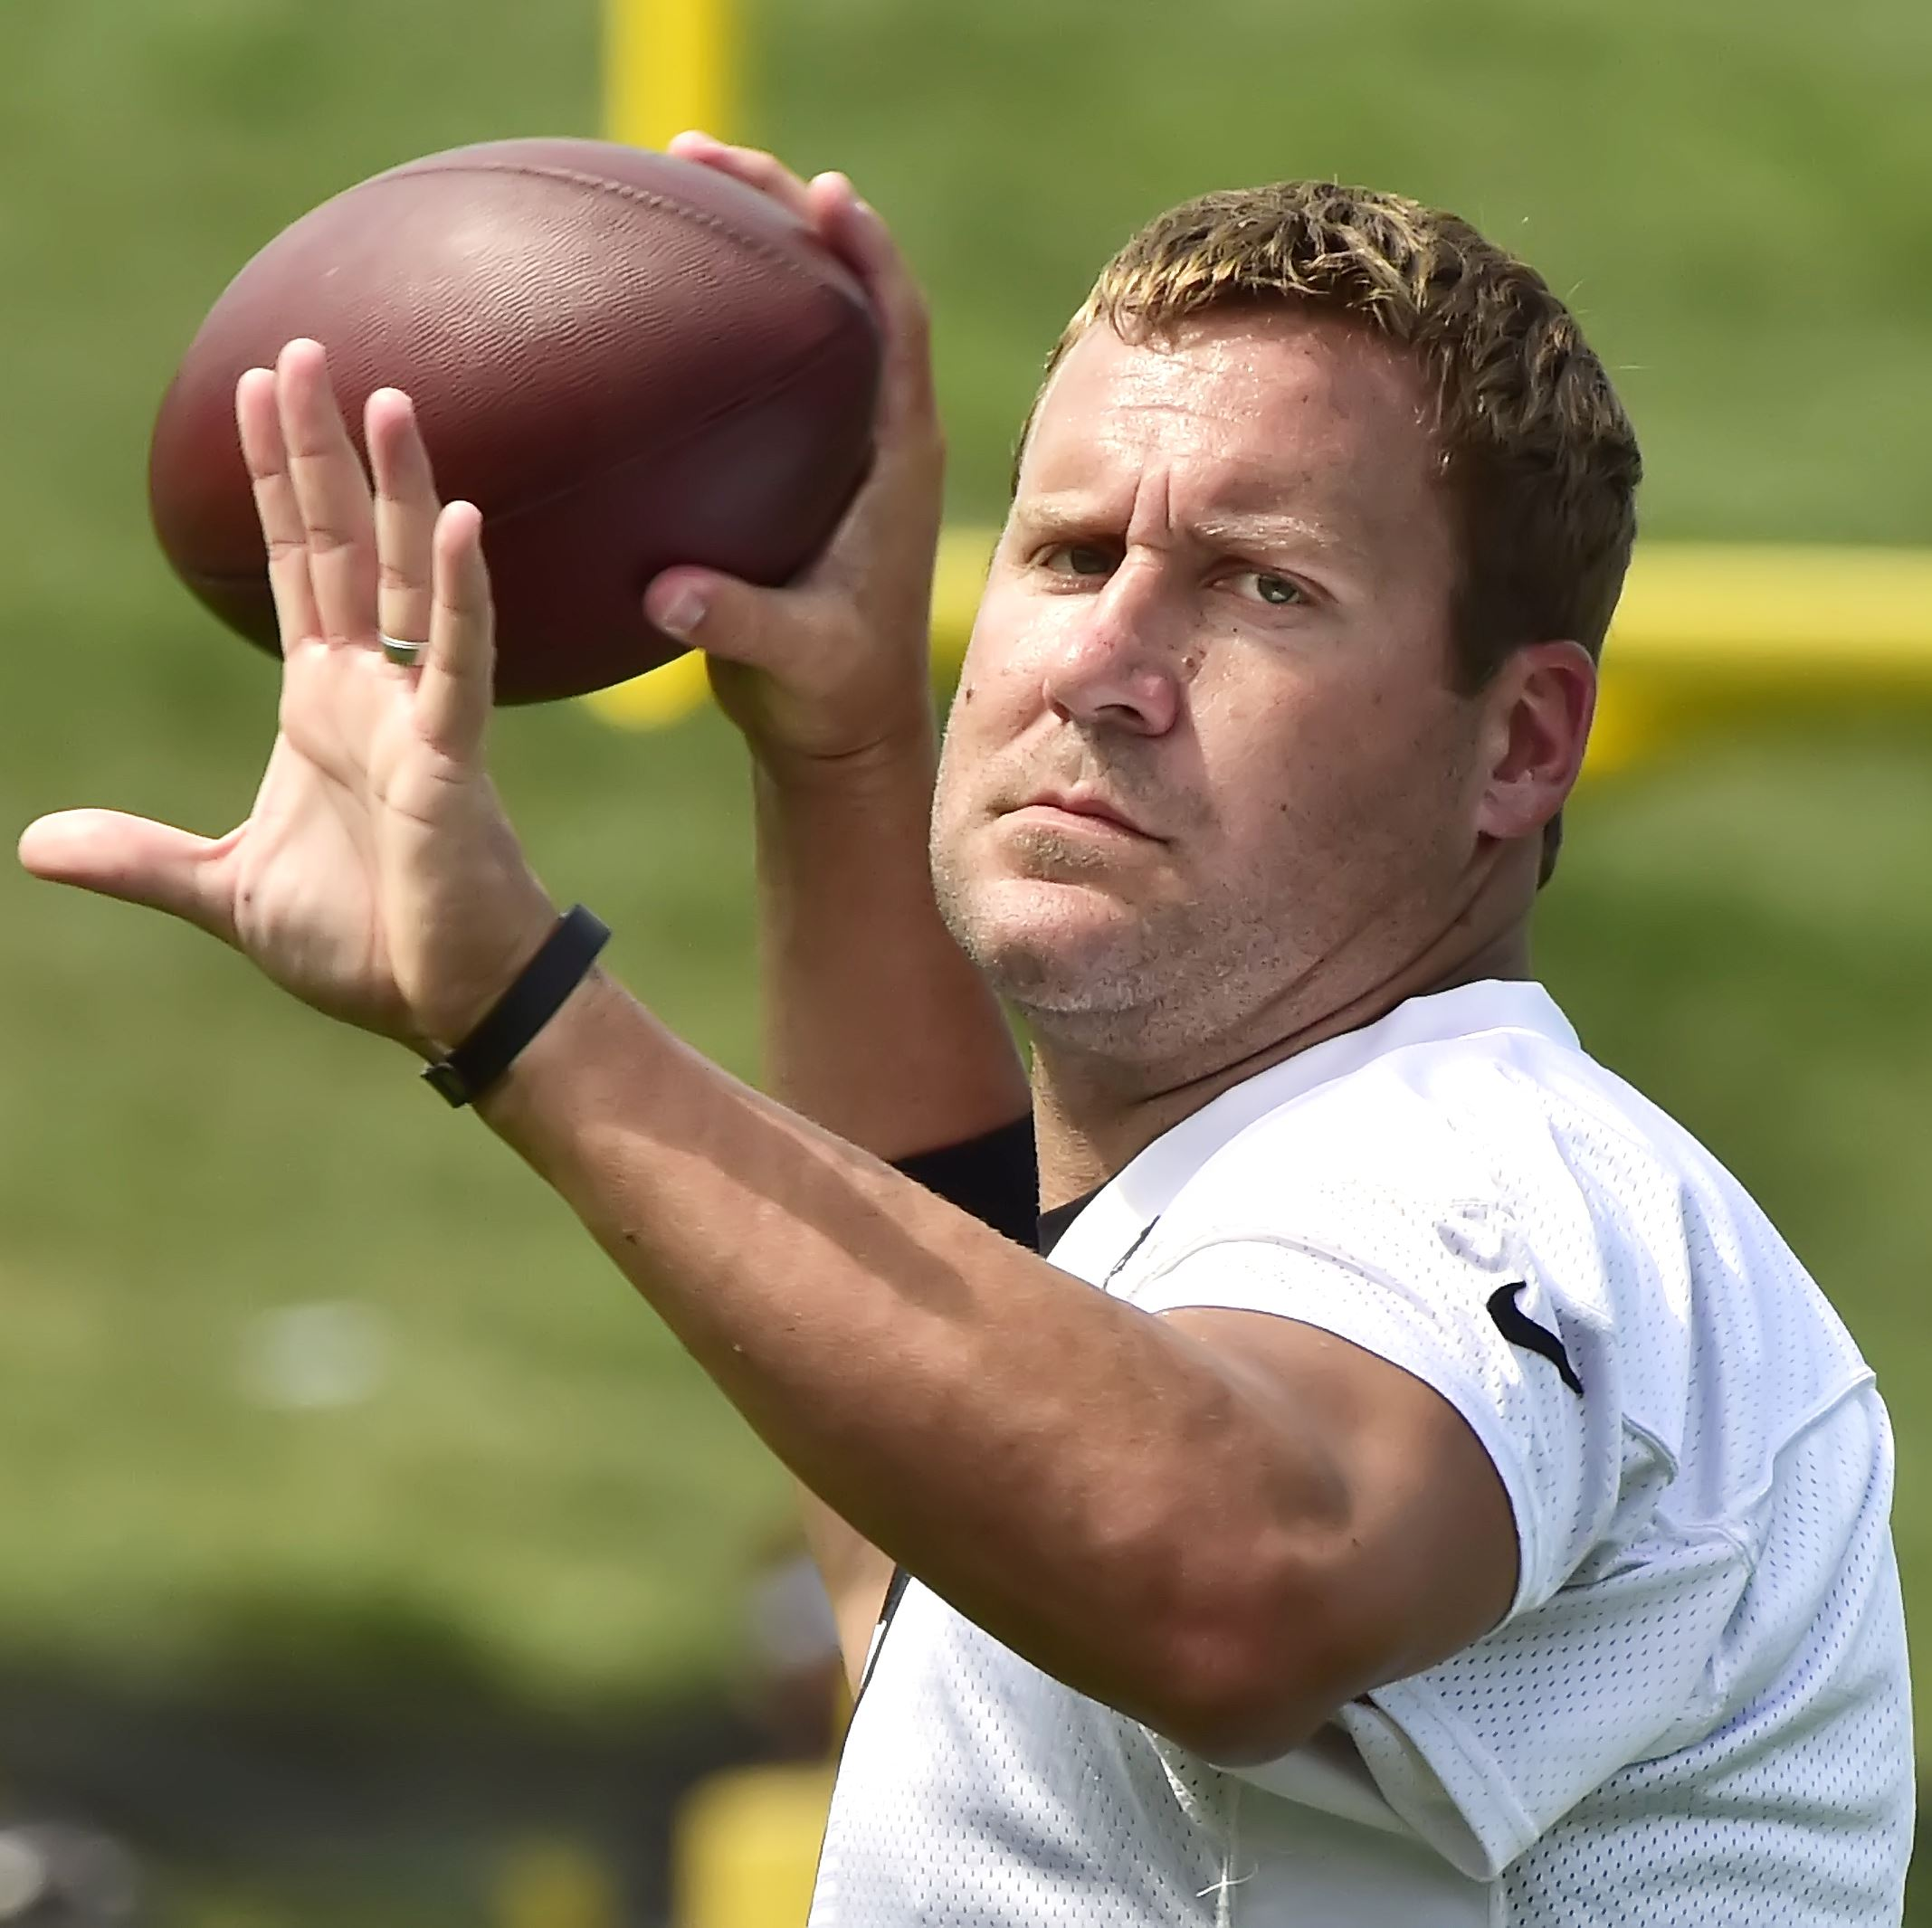 Not time to draft Roethlisberger's replacement - yet